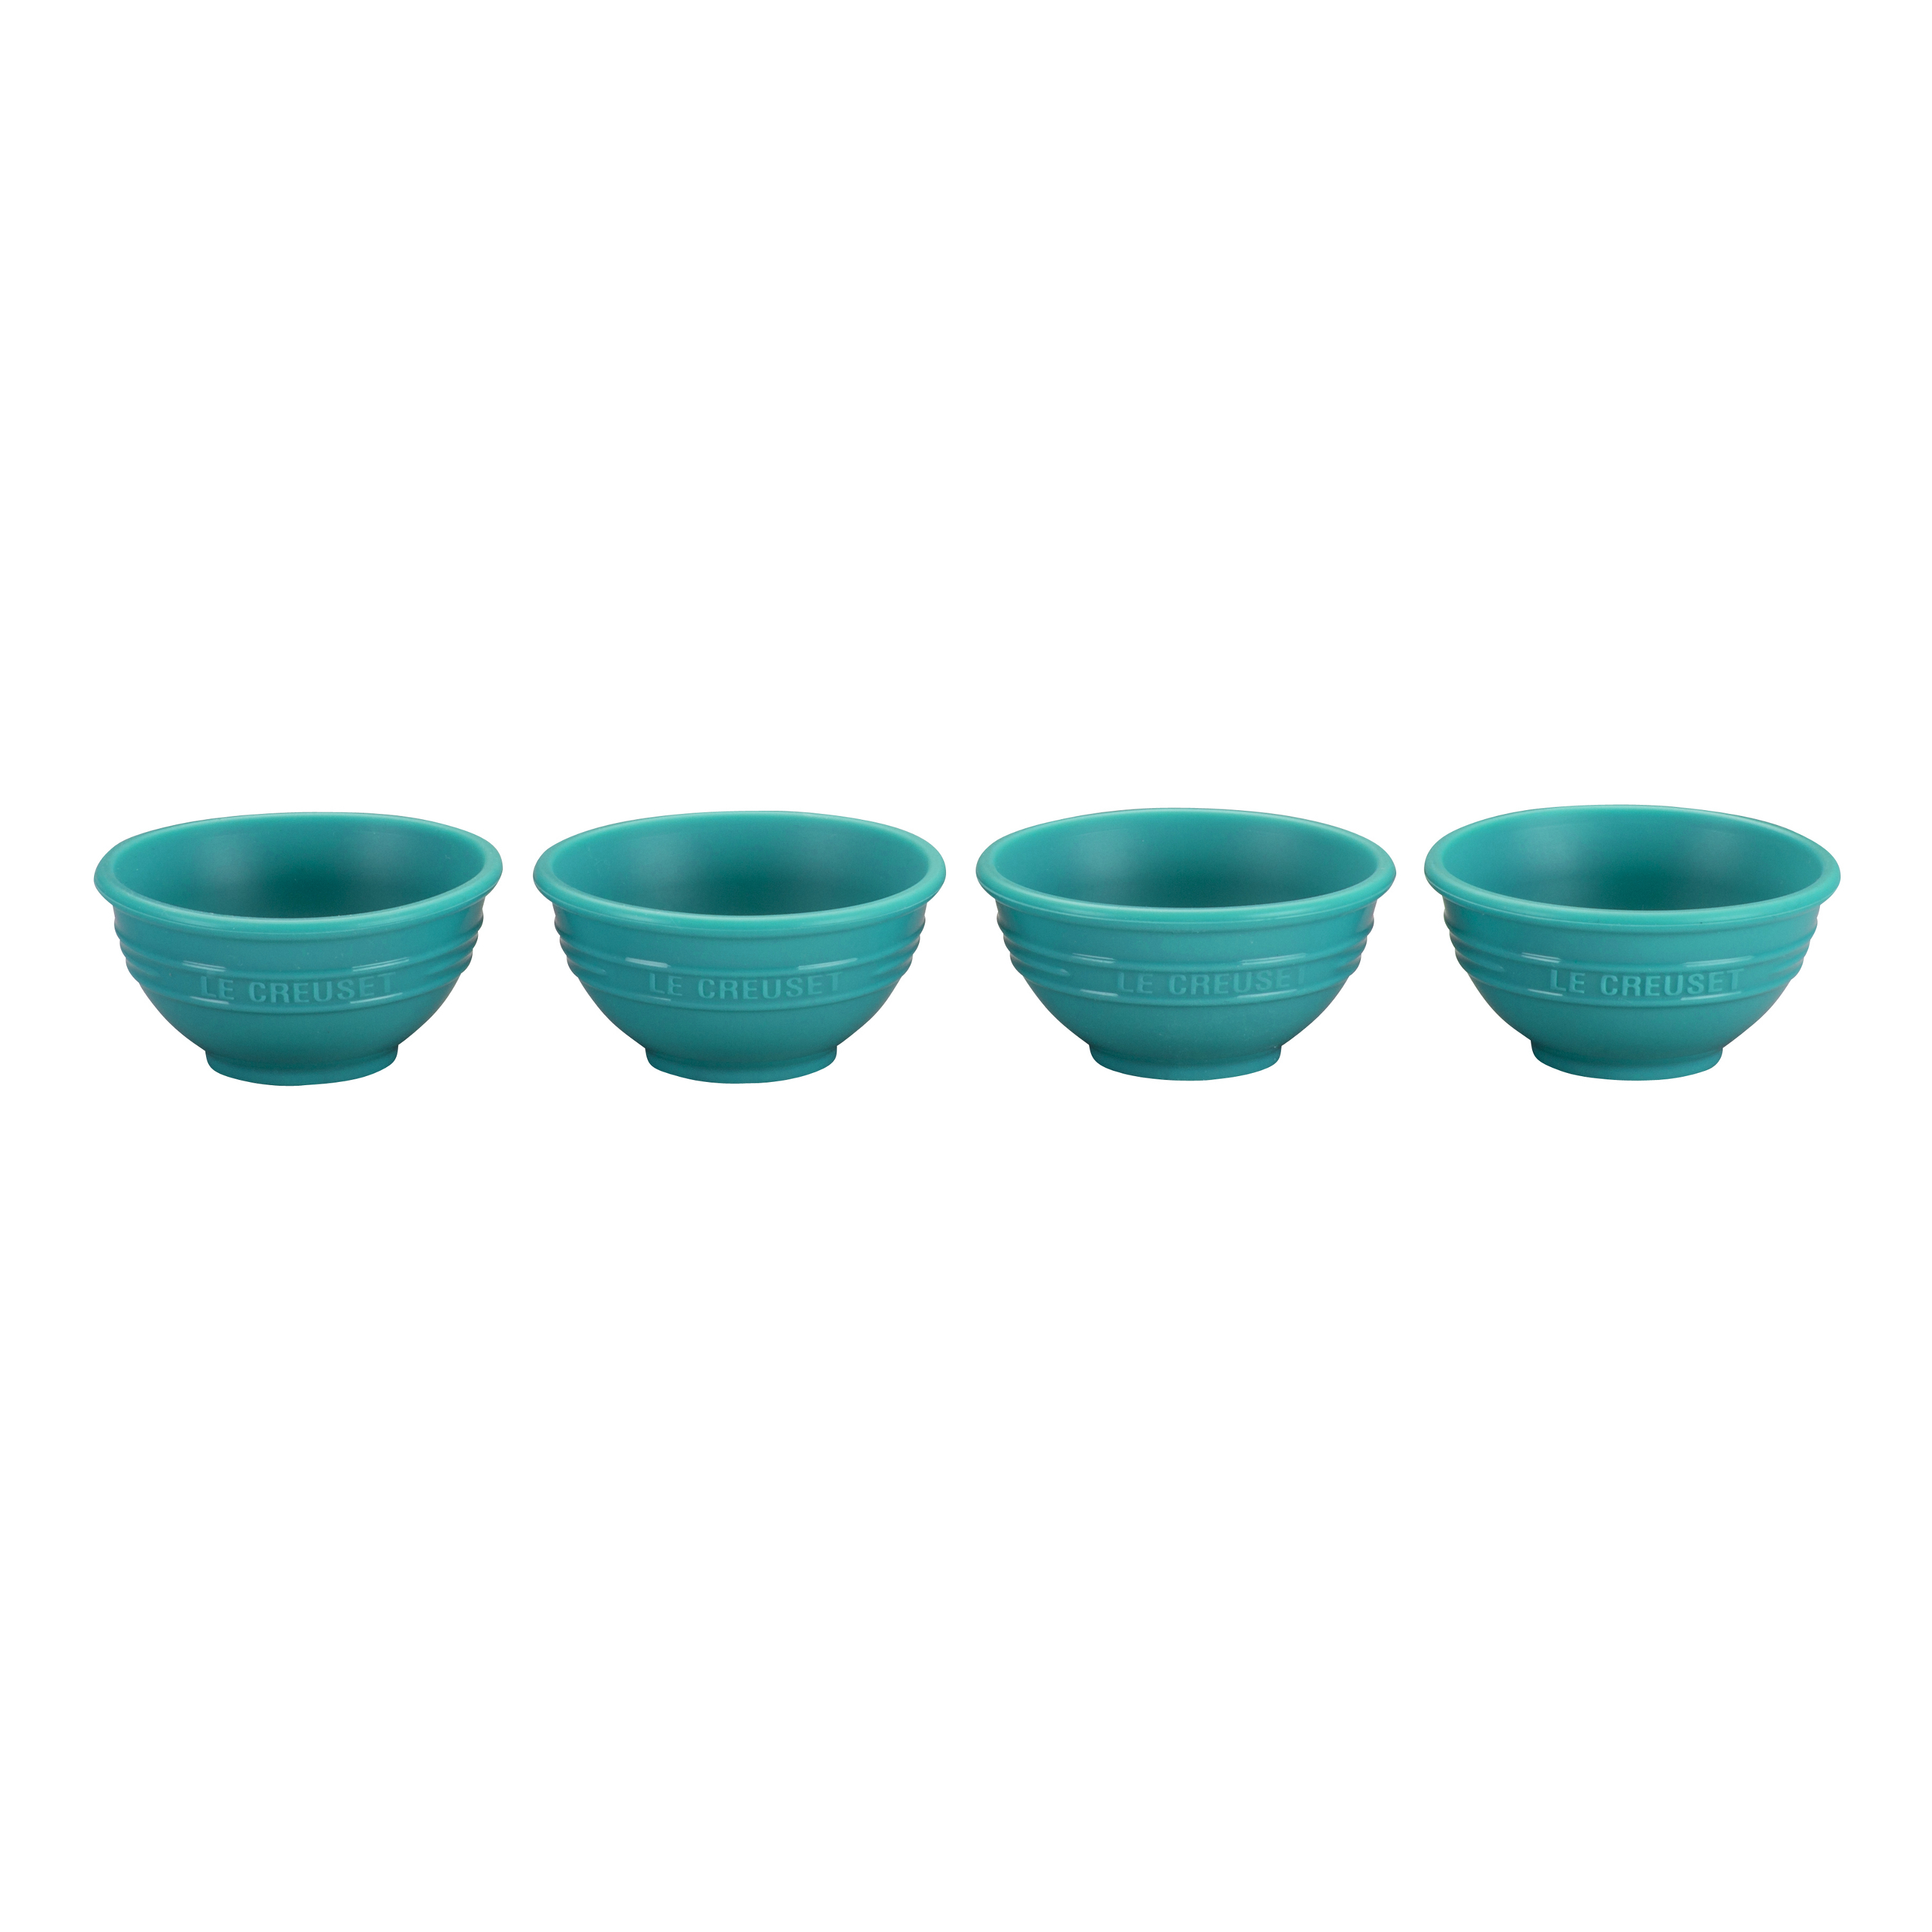 Le Creuset Caribbean Silicone Pinch Bowl, Set of 4